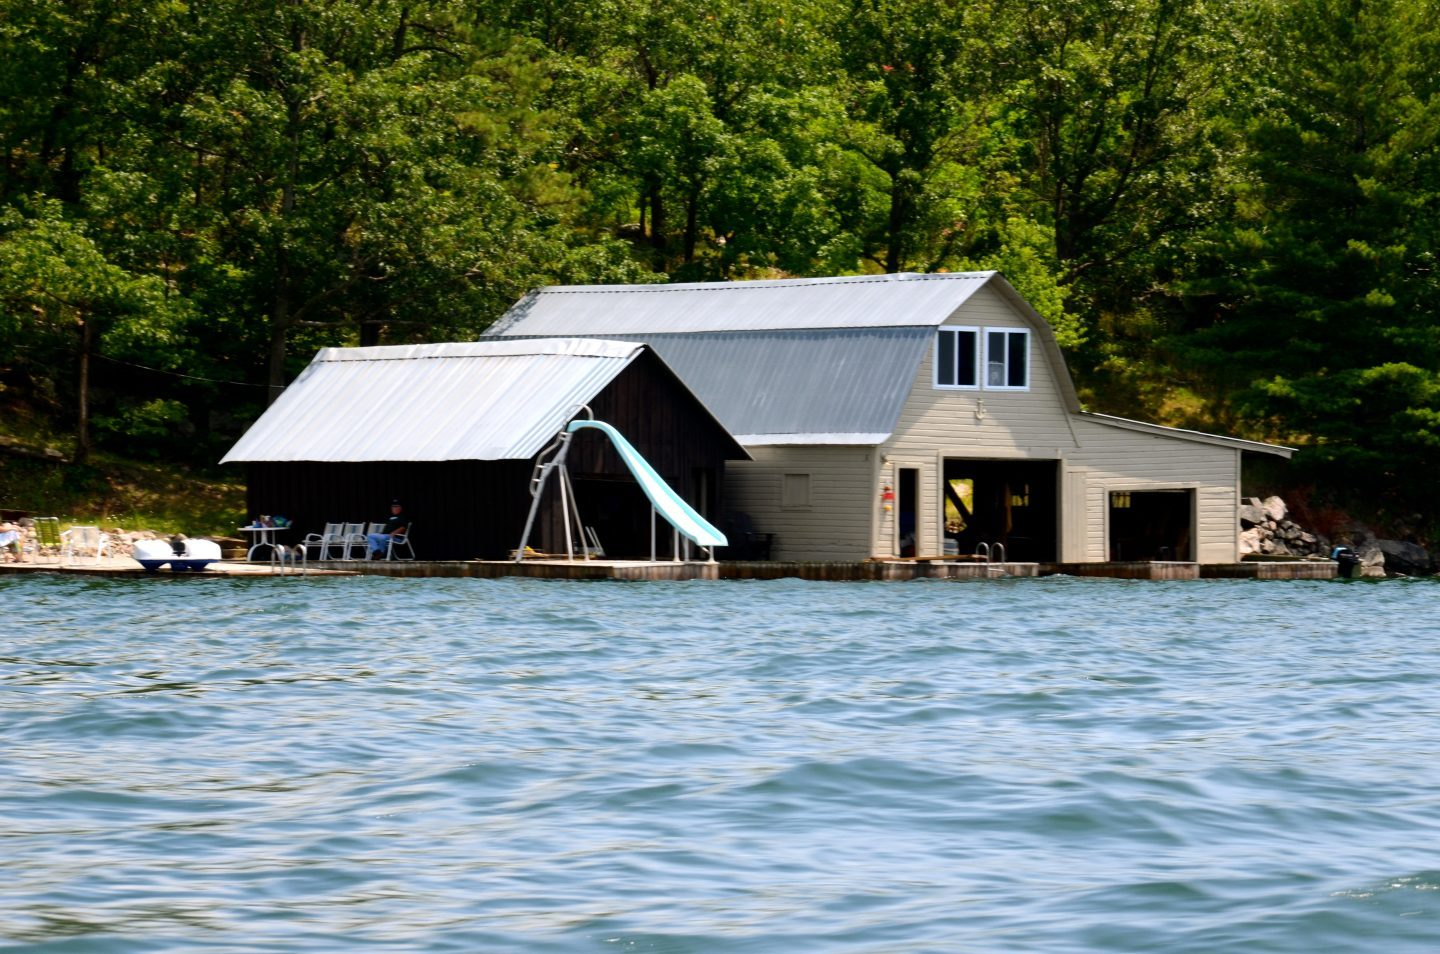 House with a water slide in the Thousand Islands.